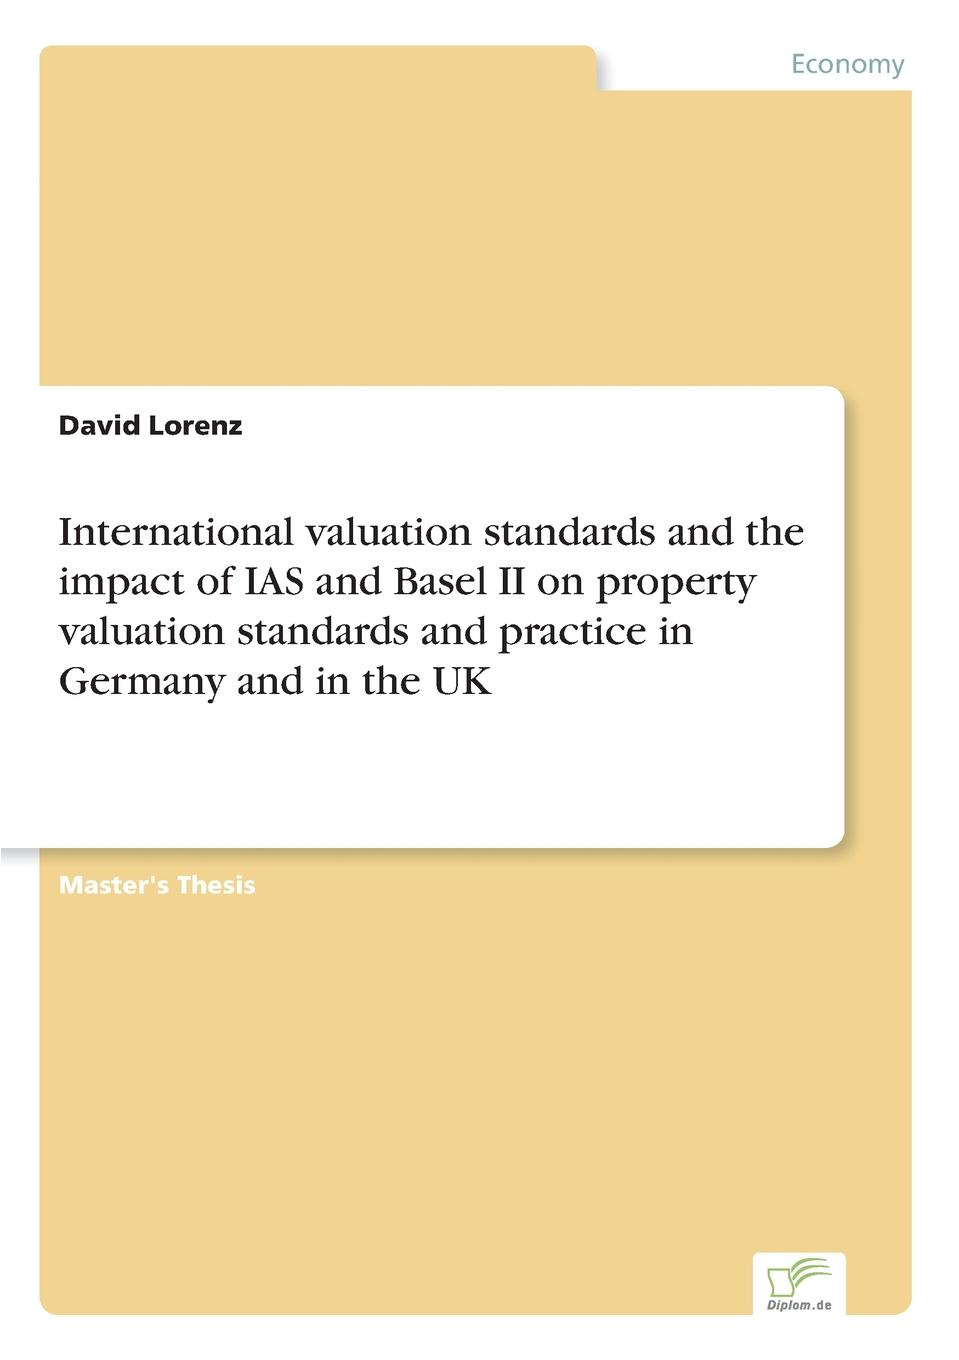 David Lorenz International valuation standards and the impact of IAS and Basel II on property valuation standards and practice in Germany and in the UK asokan anandarajan gary kleinman international auditing standards in the united states comparing and understanding standards for isa and pcaob